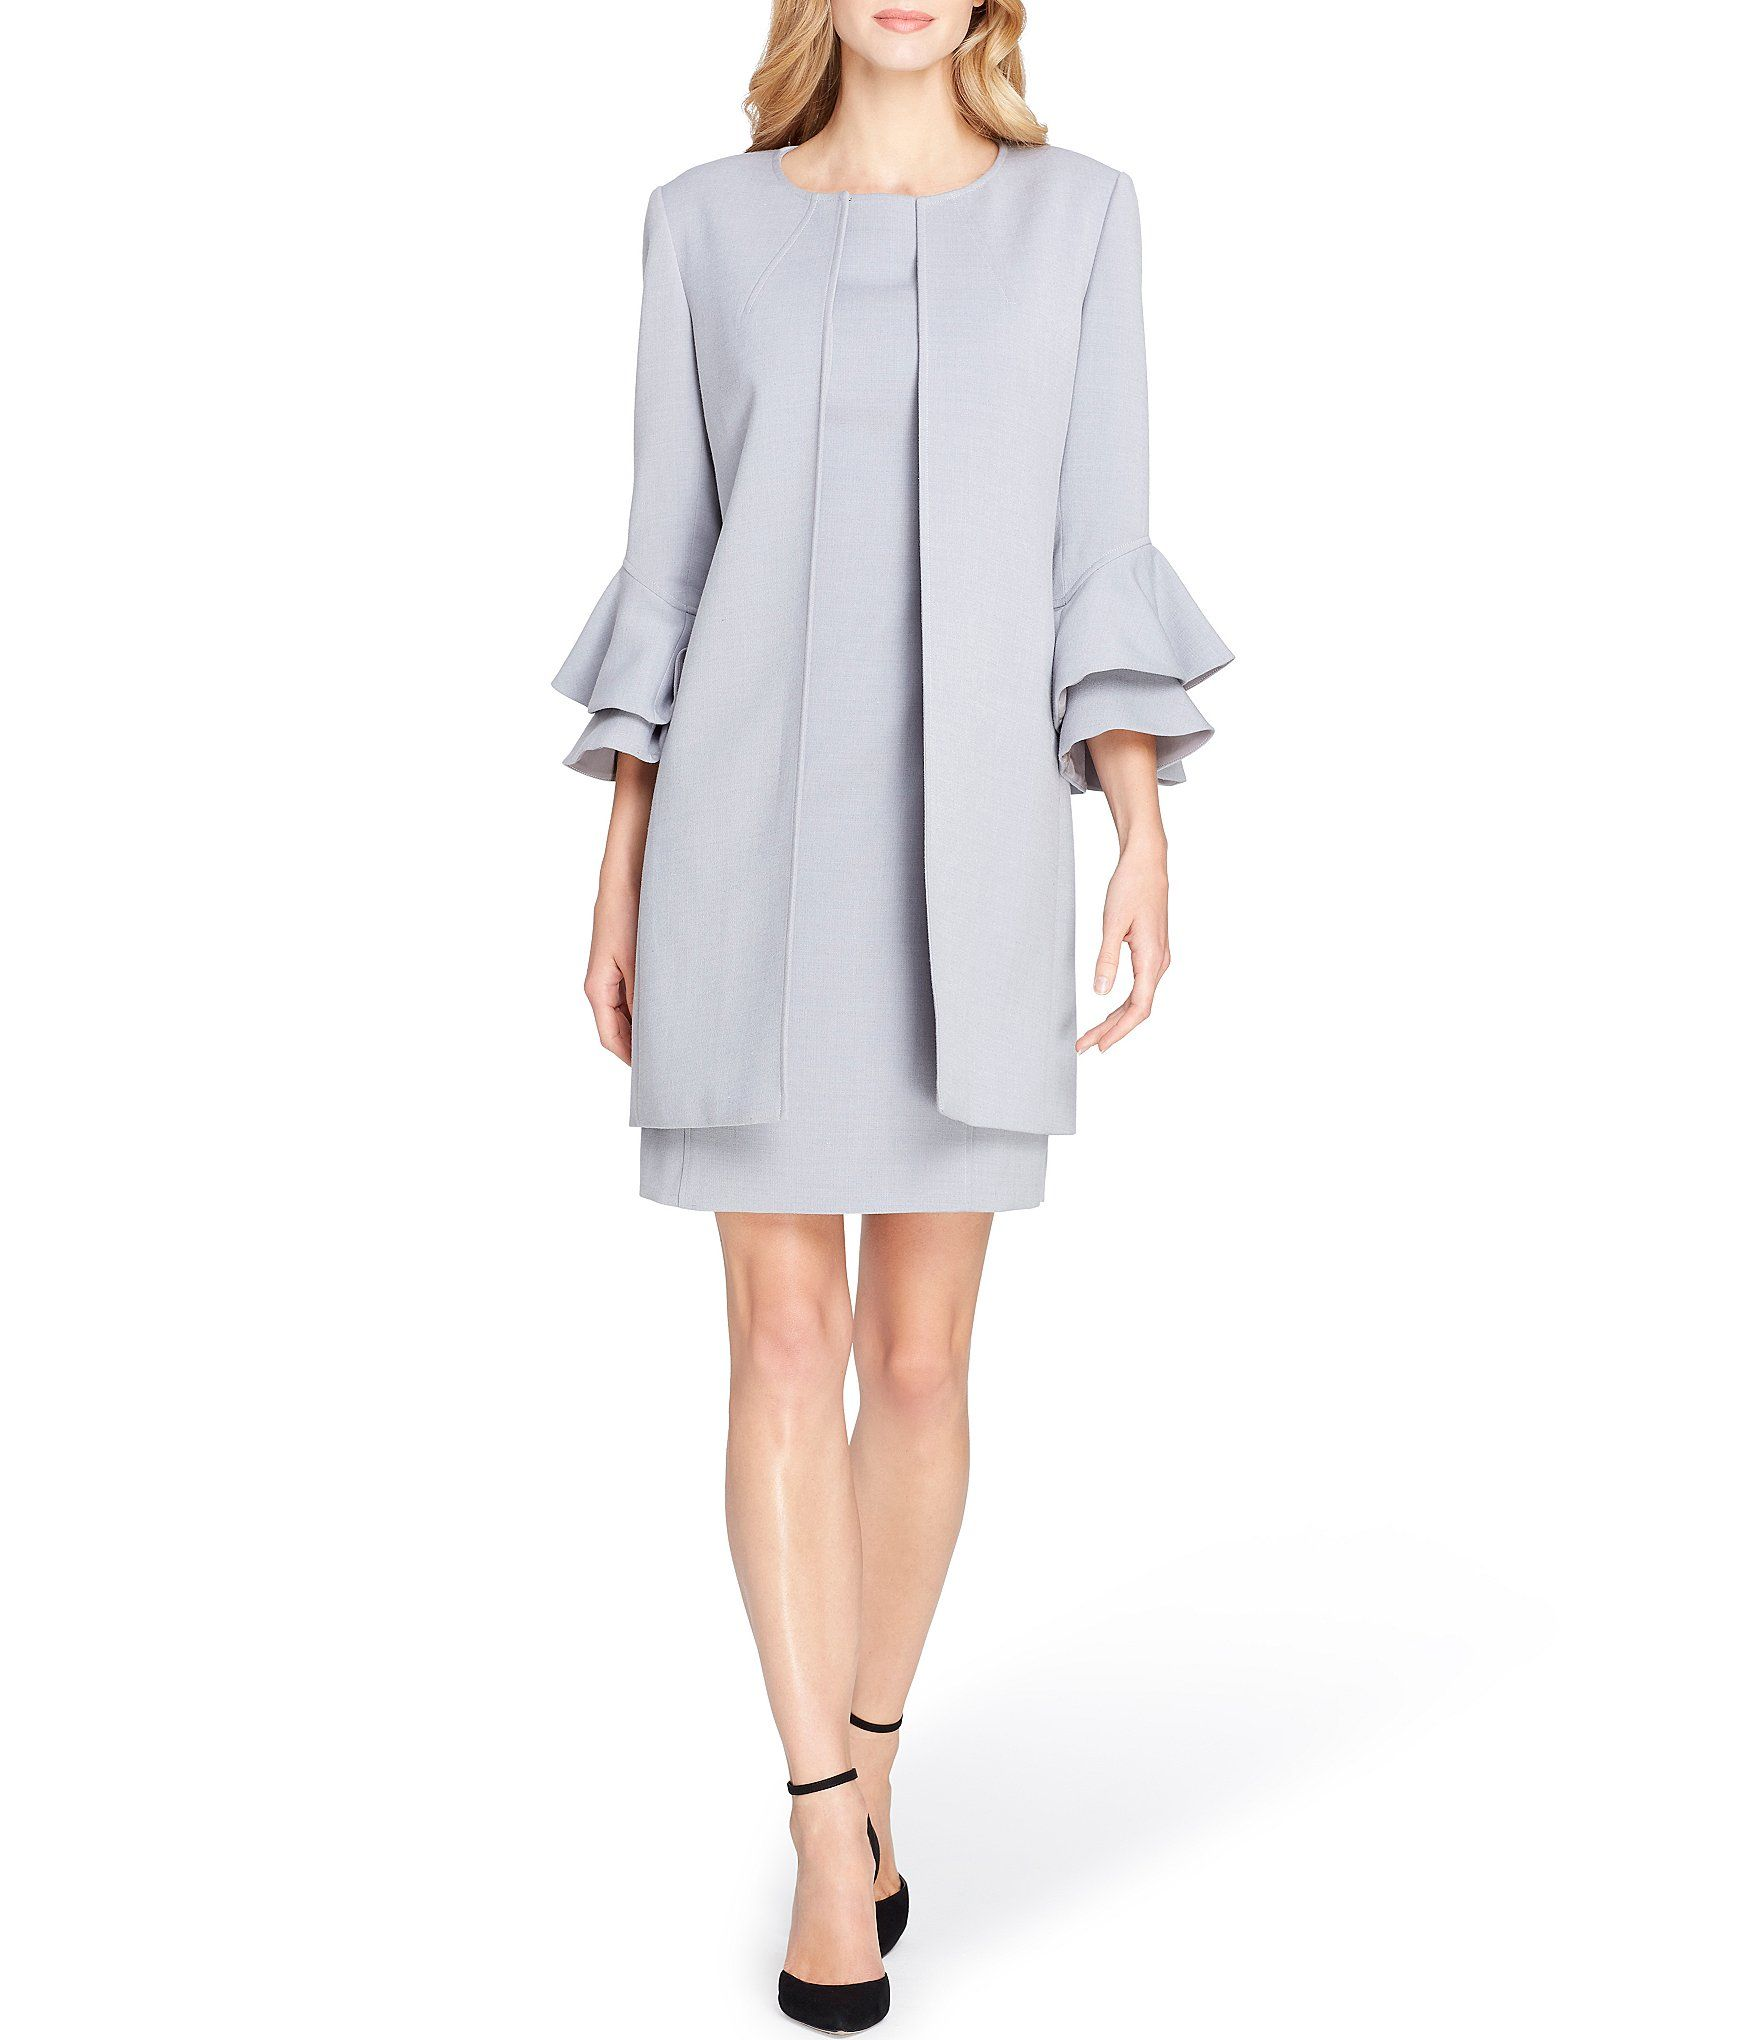 Tahari Asl Bellsleeve Ponte 2piece Dress Suit Dillards Dresses